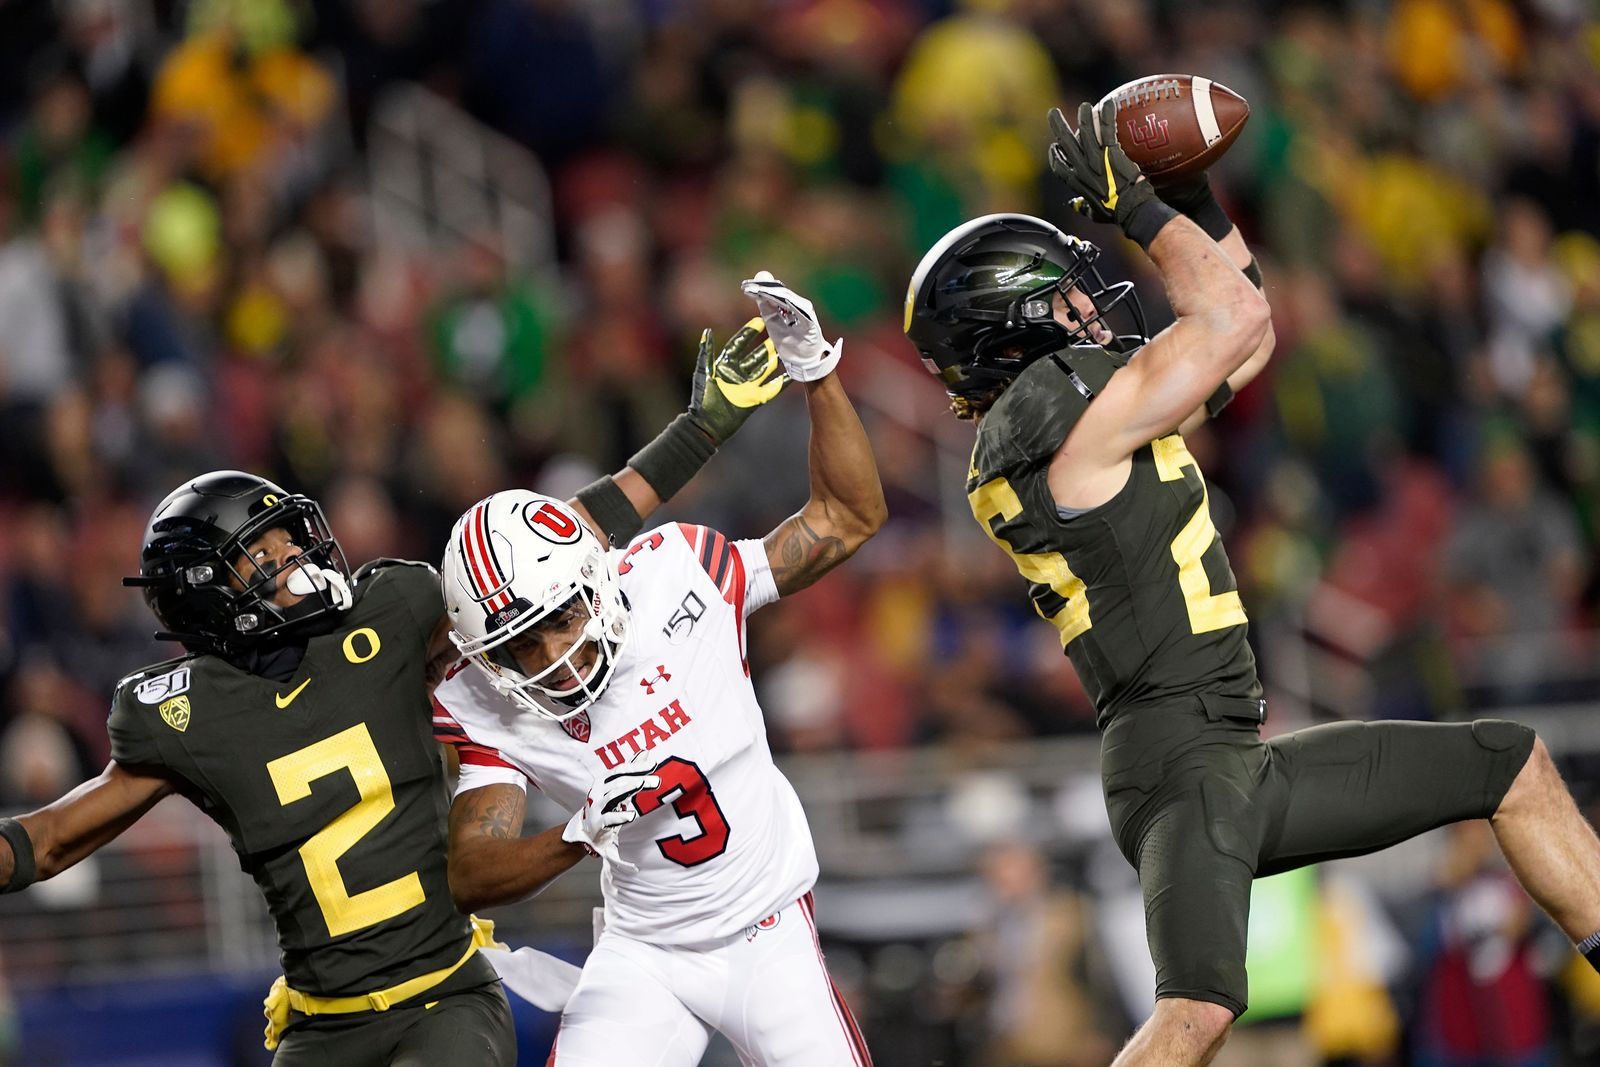 Oregon safety Brady Breeze, right, intercepts a pass intended for Utah wide receiver Demari Simpkins (3) as Oregon cornerback Mykael Wright (2) defends during the first half of the Pac-12 Conference championship NCAA college football game in Santa Clara, Calif., Friday, Dec. 6, 2018. (AP Photo/Tony Avelar)